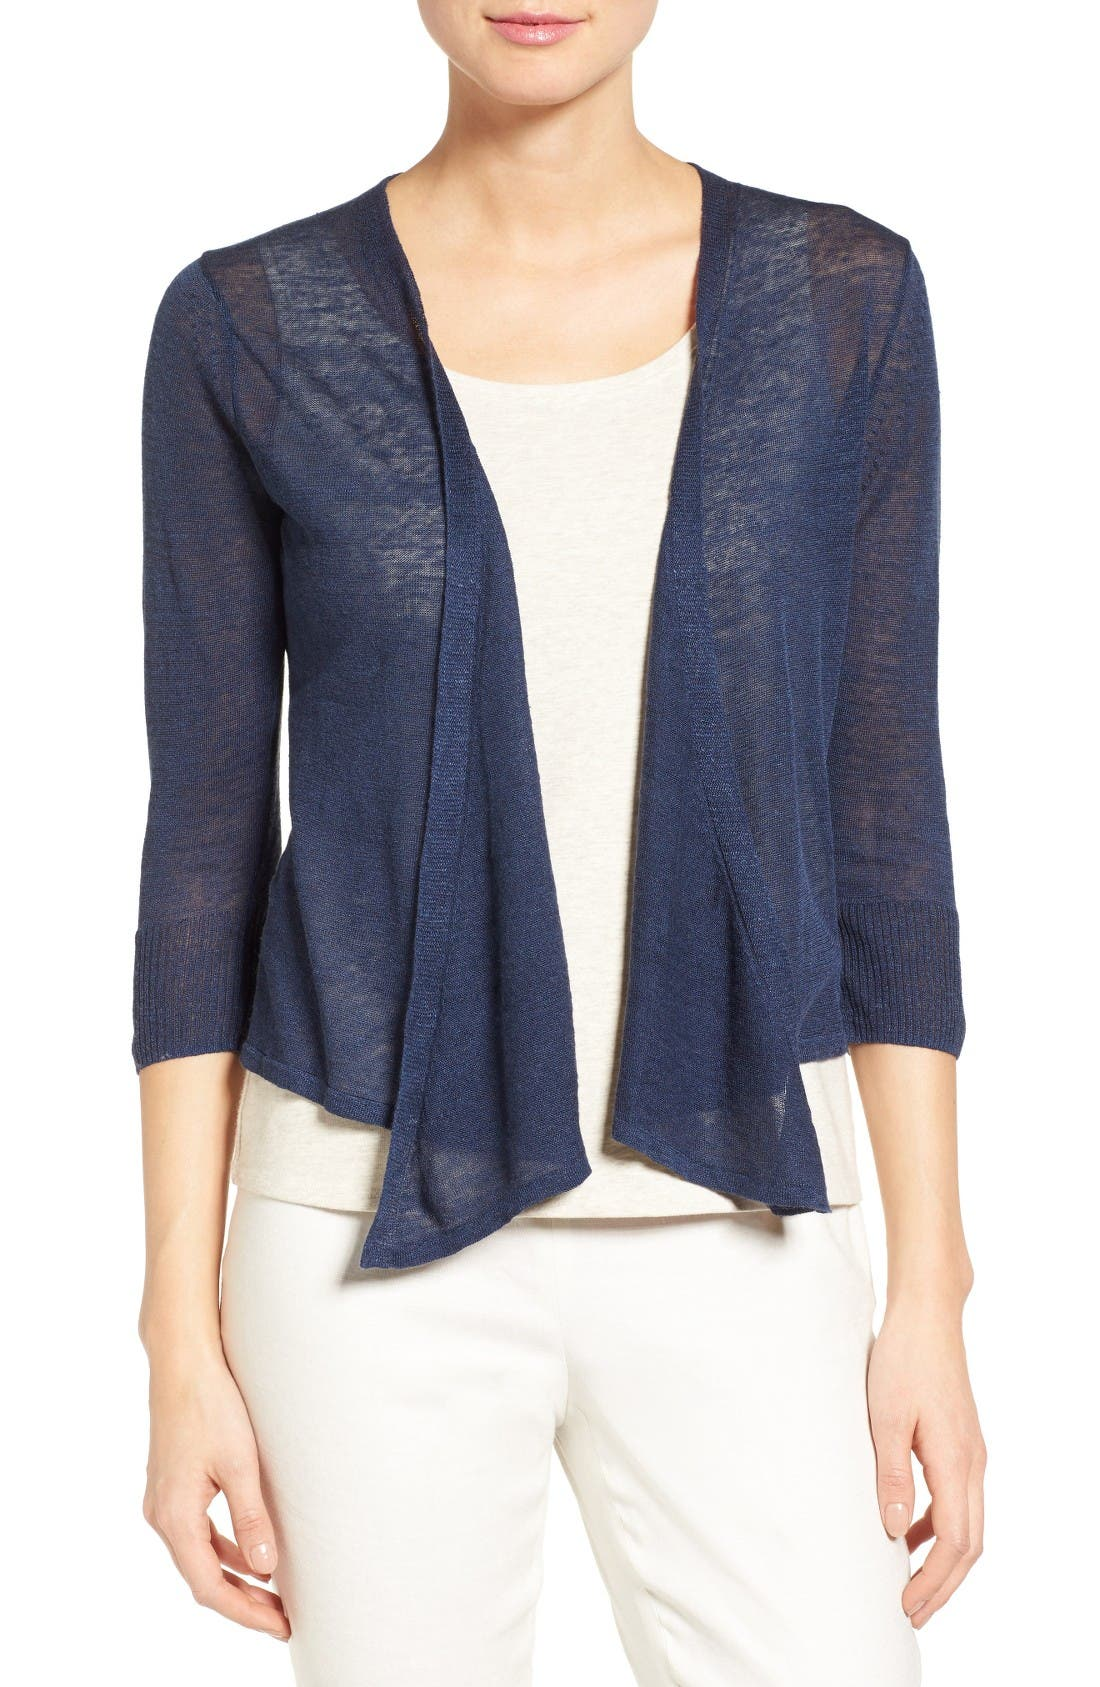 4-Way Convertible Three Quarter Sleeve Cardigan,                             Main thumbnail 1, color,                             Indigo